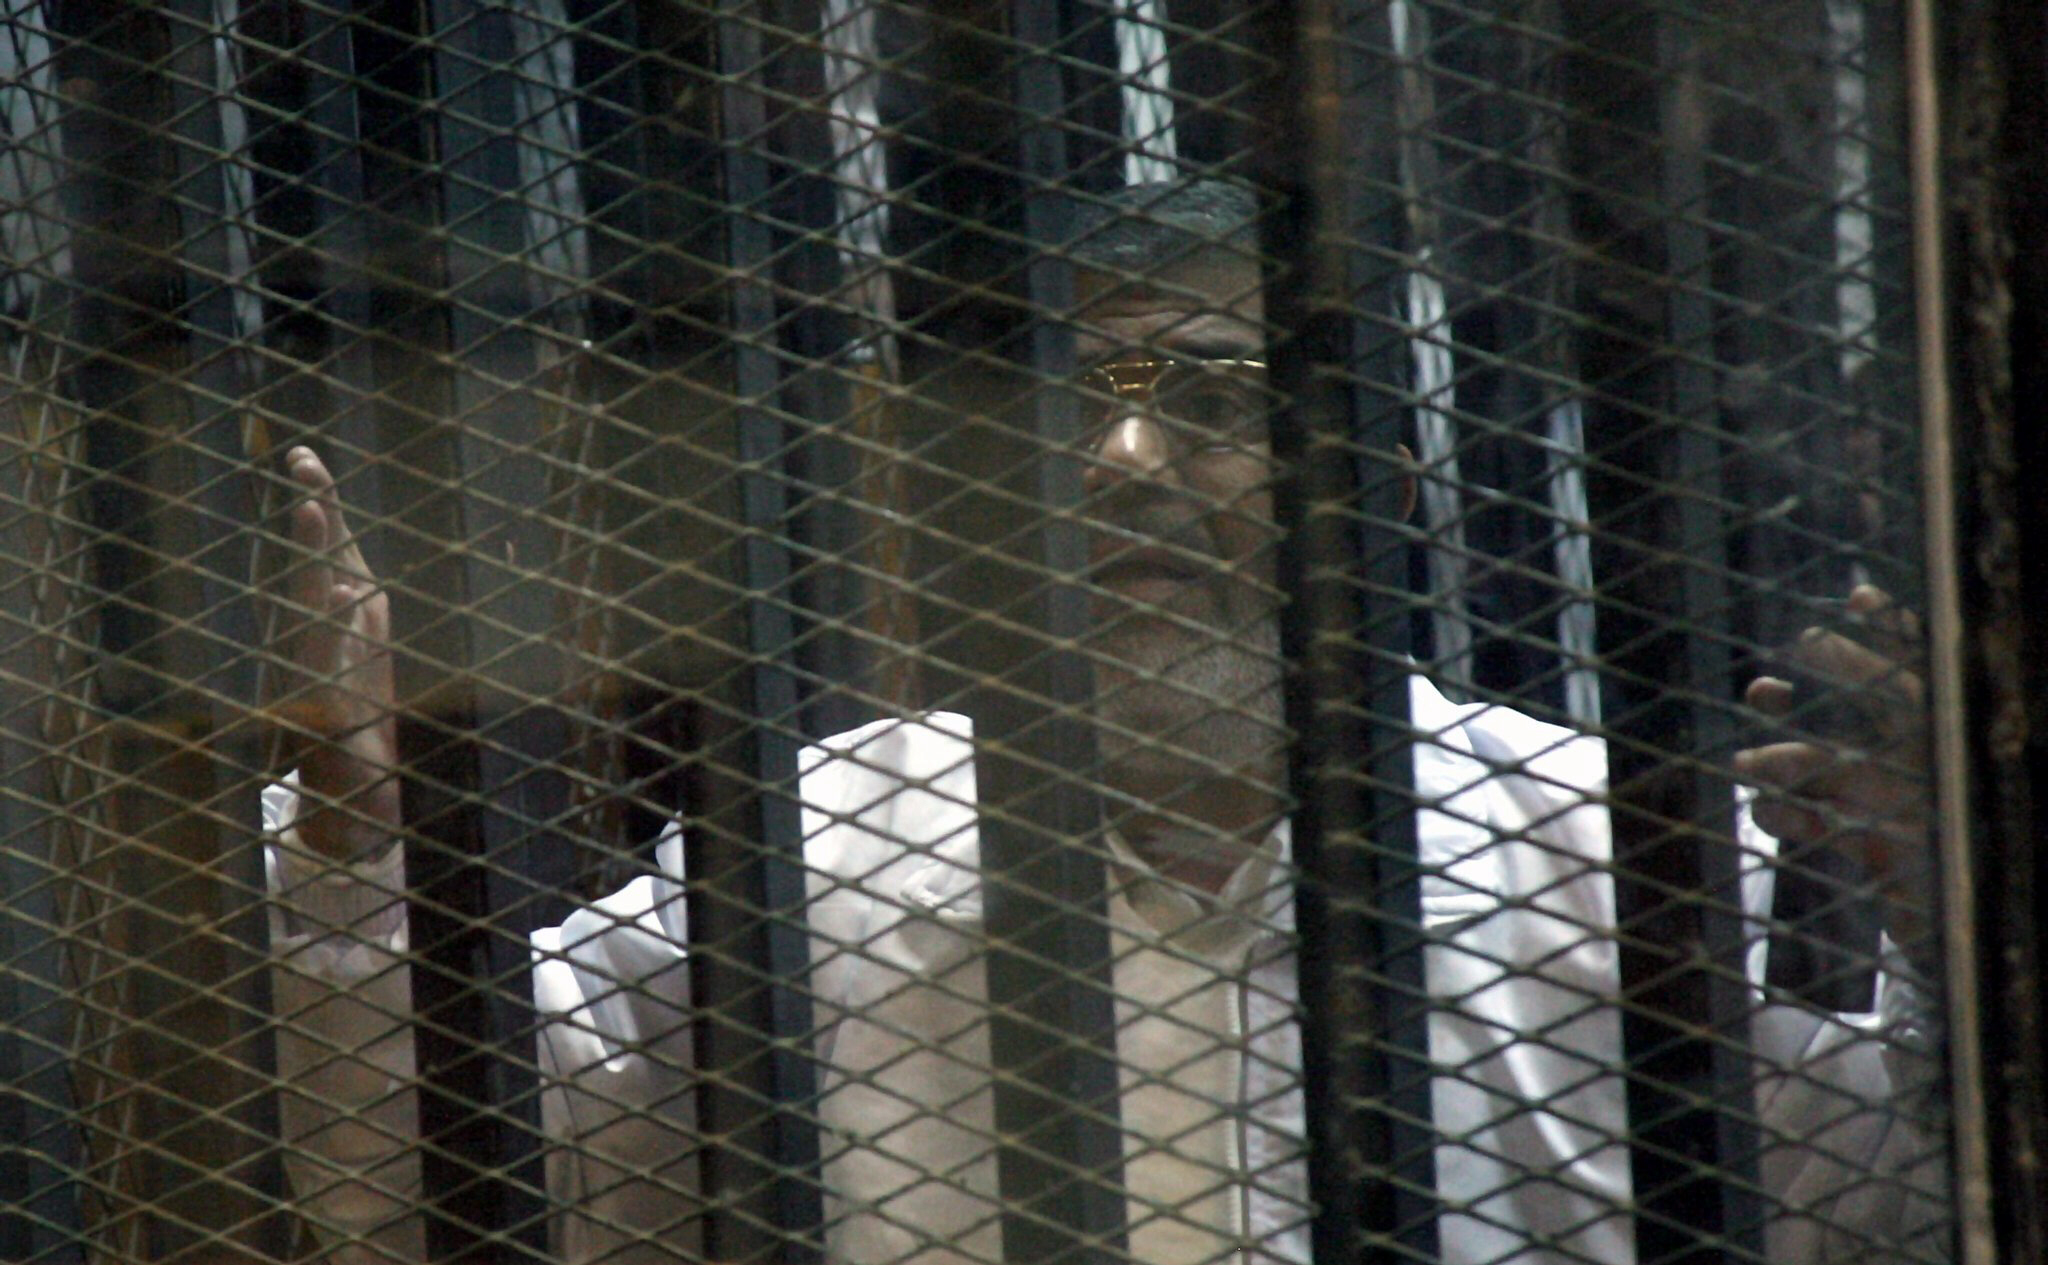 Ousted Egyptian president Mohamed Morsi looks helplessly from soundproof cage. Morsi faces execution by hanging if given the death sentence for any one of several crimes he is being charged with.